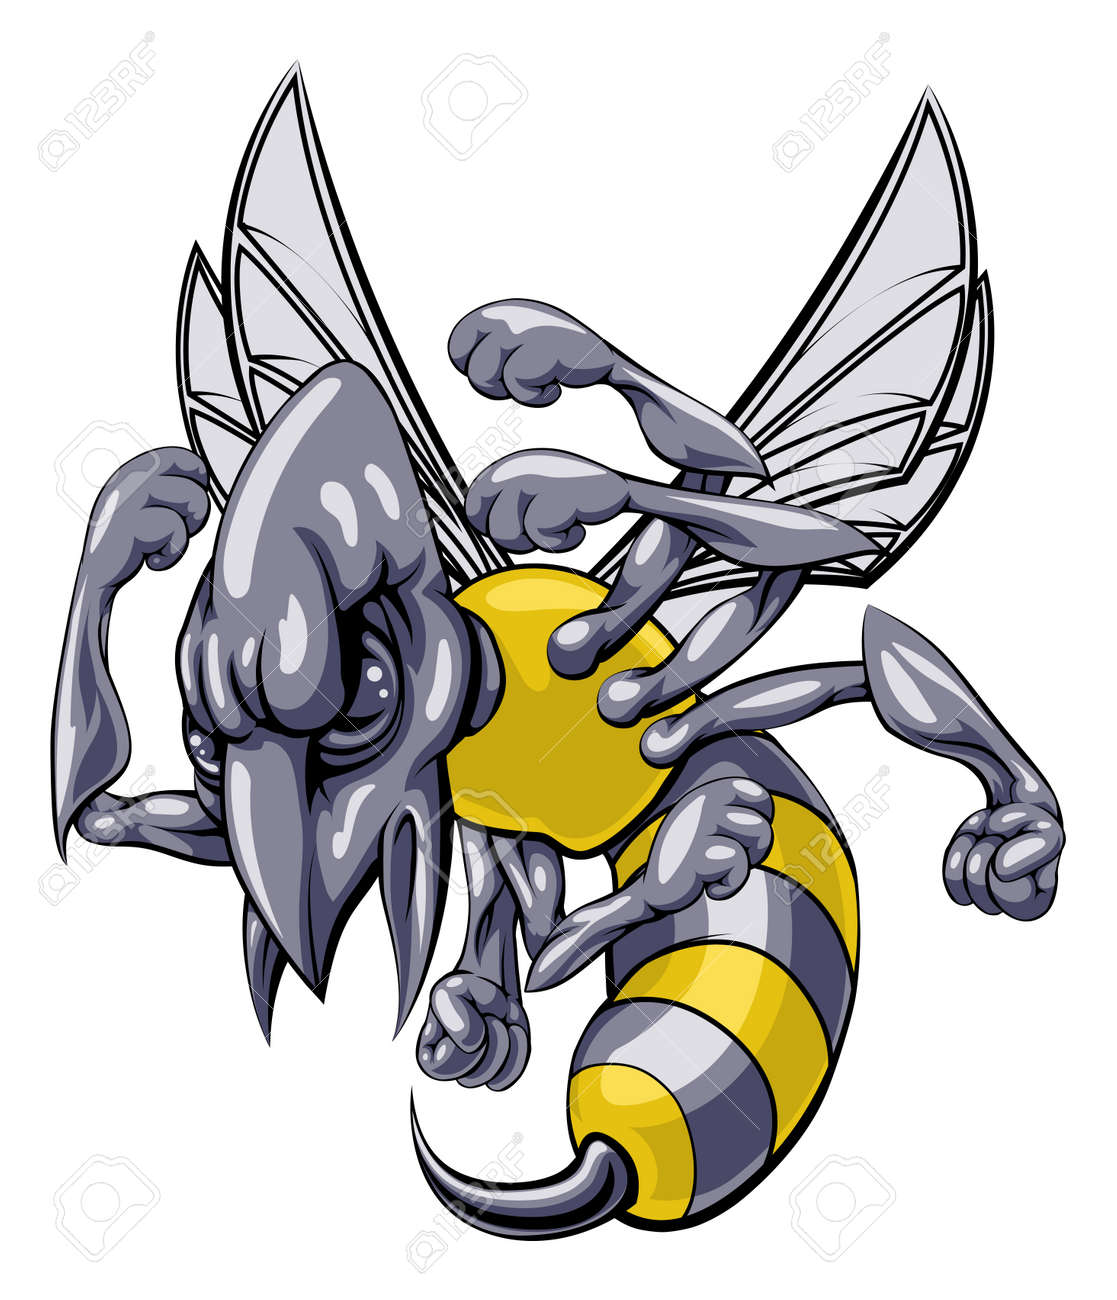 12,853 Wasp Stock Vector Illustration And Royalty Free Wasp Clipart